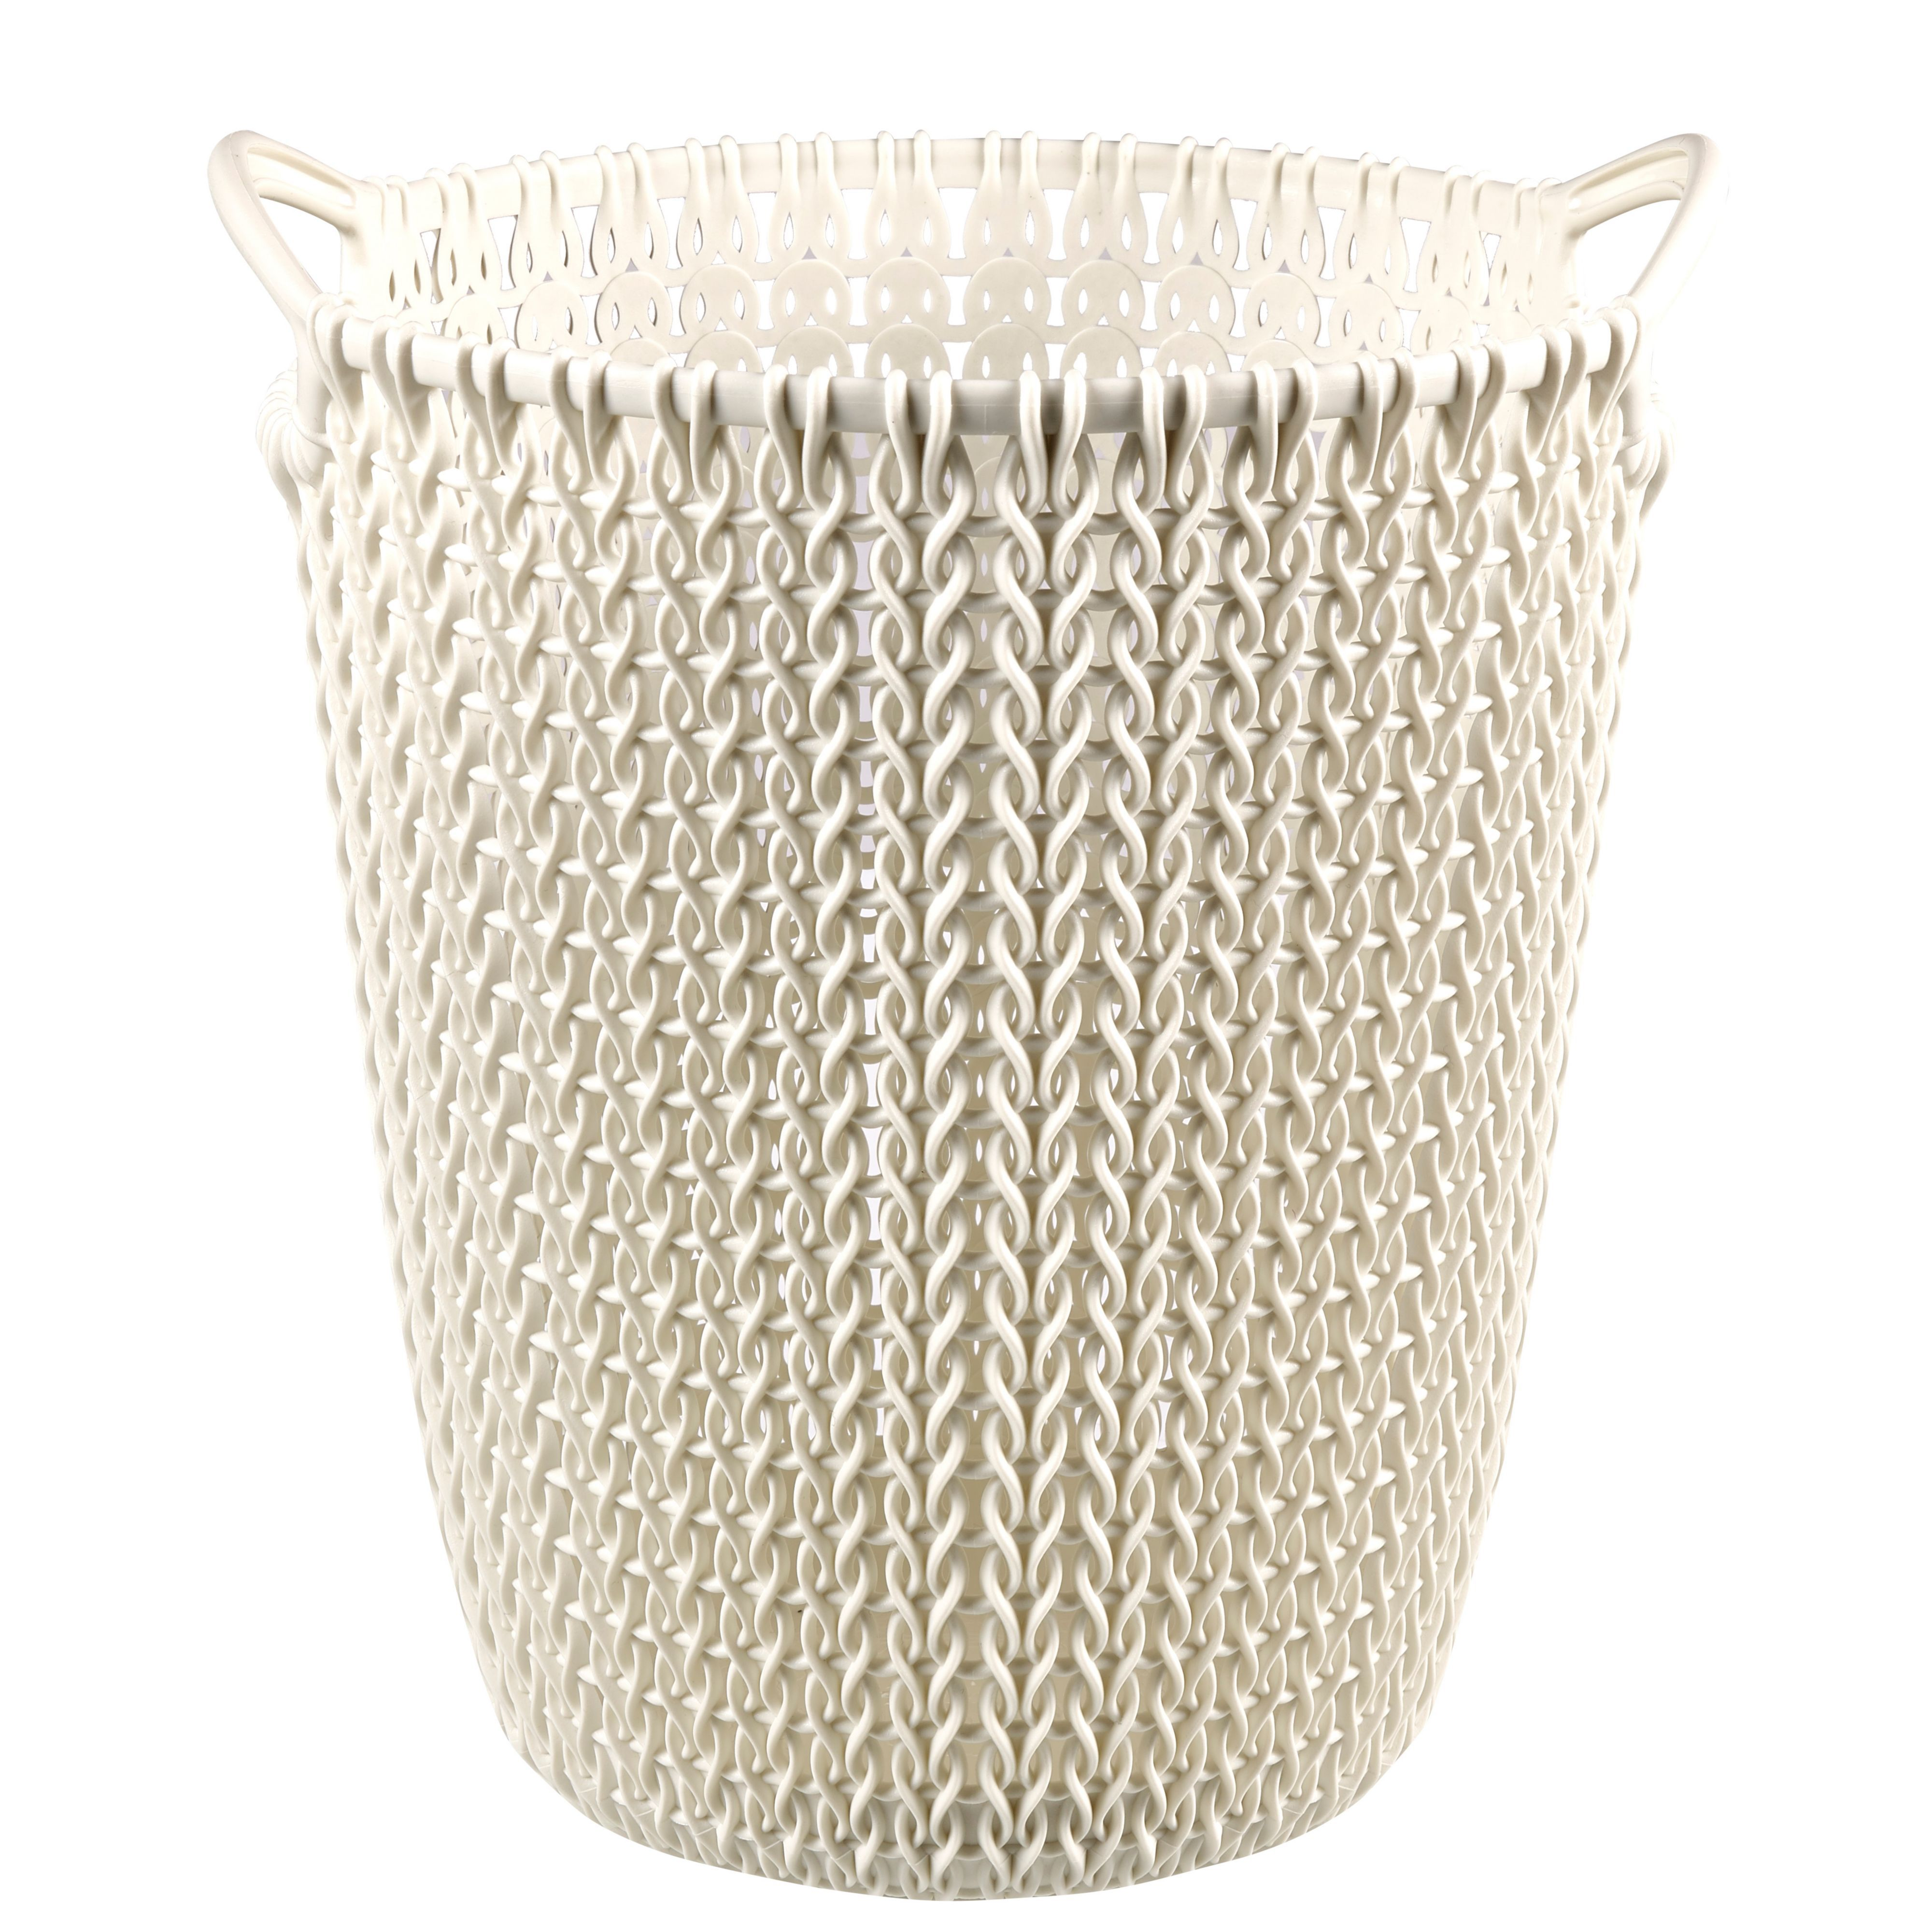 Curver Knit Effect Oasis White Plastic Circular Paper Bin